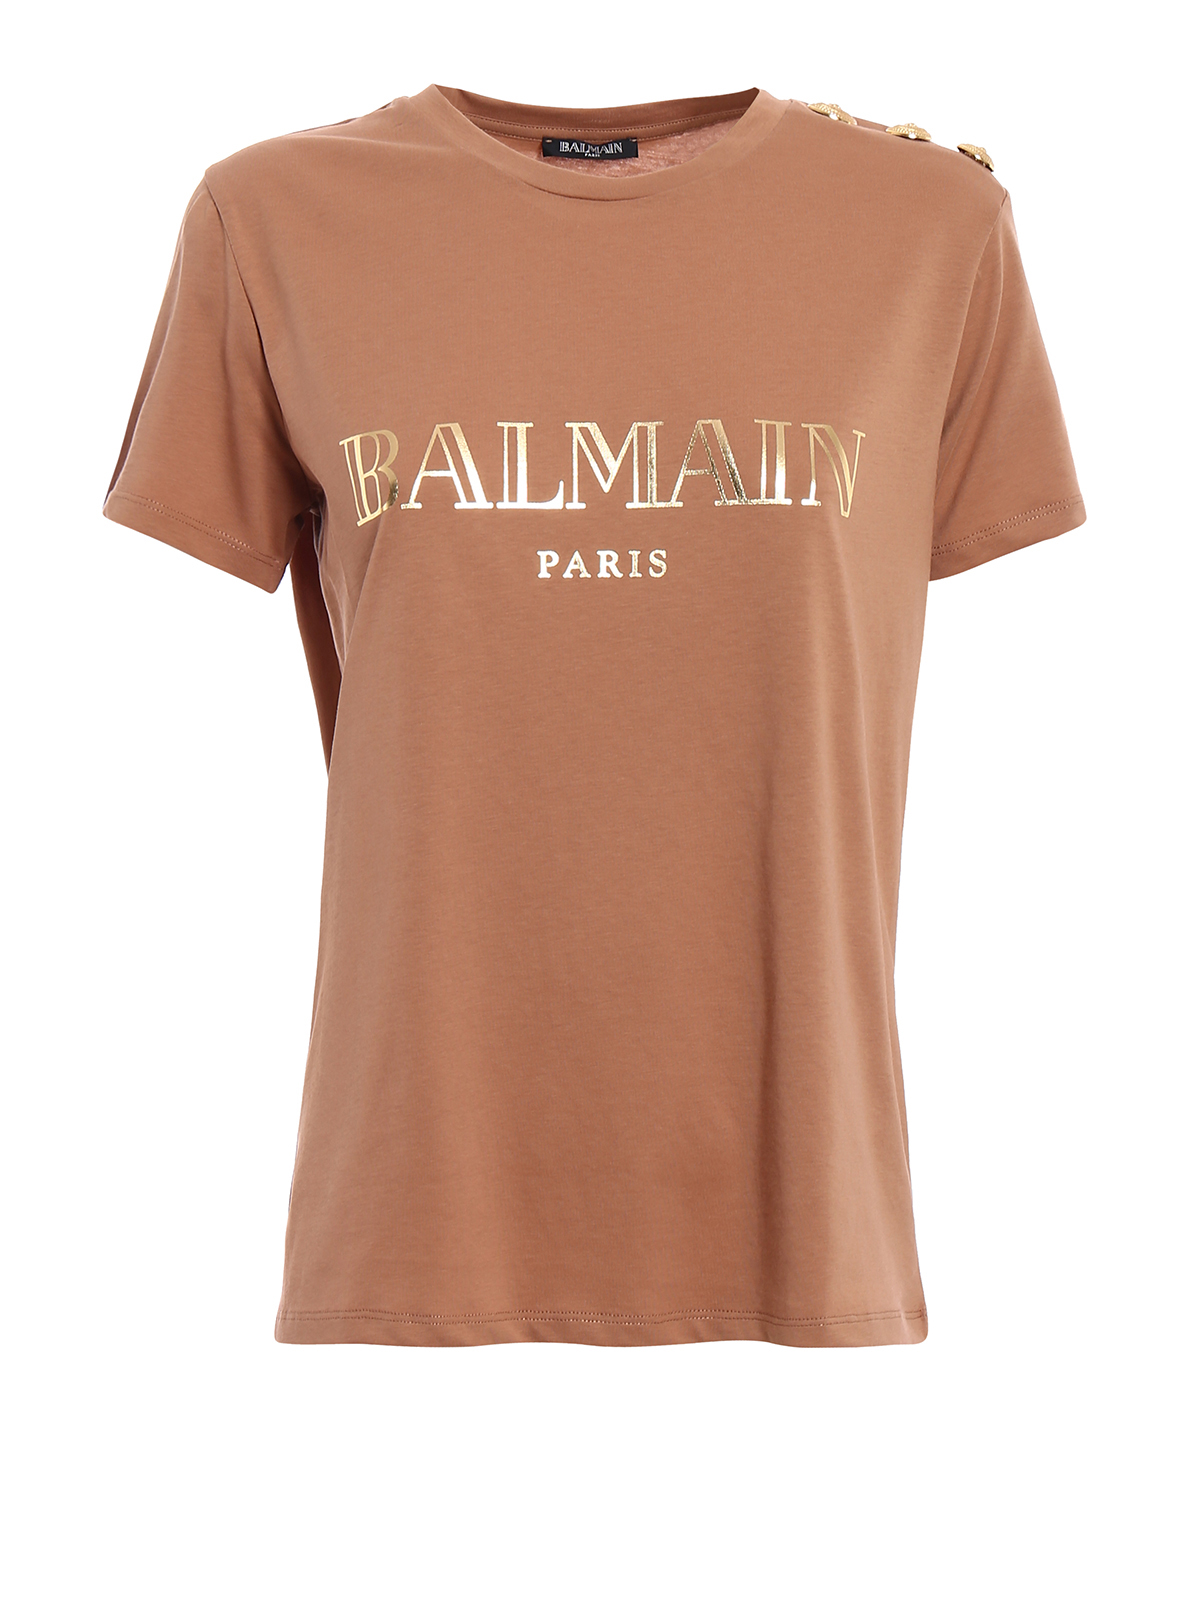 Logo Print And Buttons T Shirt By Balmain T Shirts Ikrix